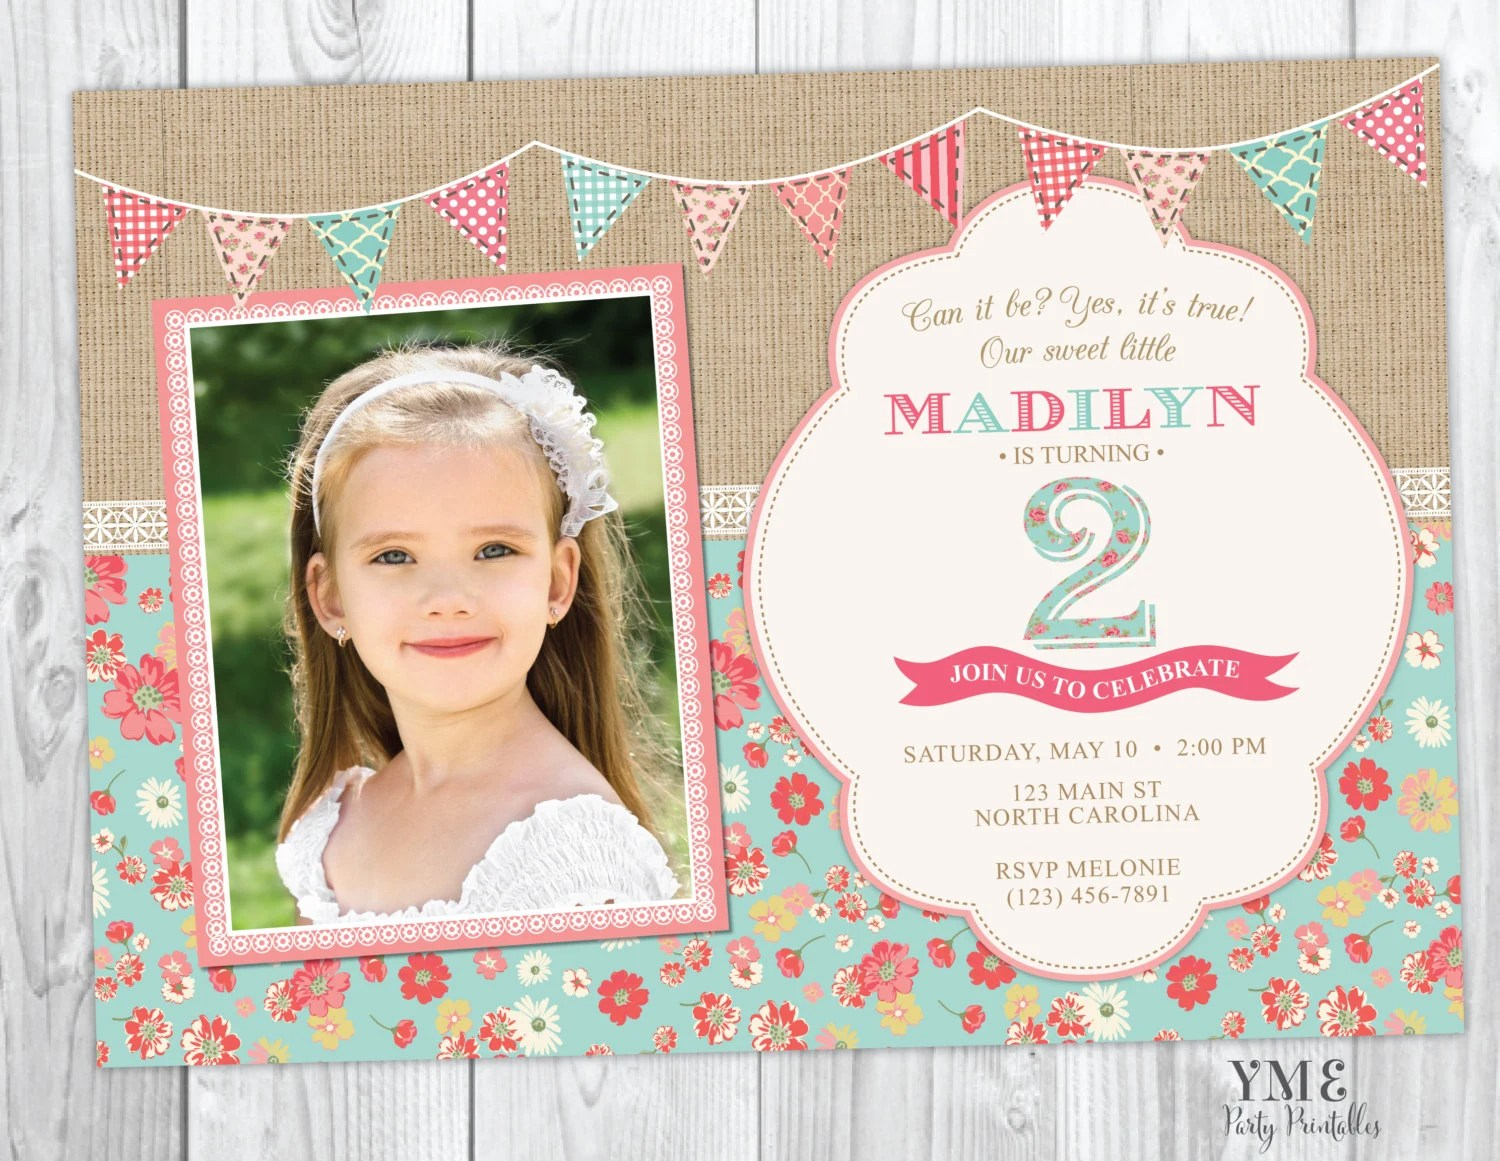 Second Birthday Invitation - Shabby Chic Burlap and Lace Invite With